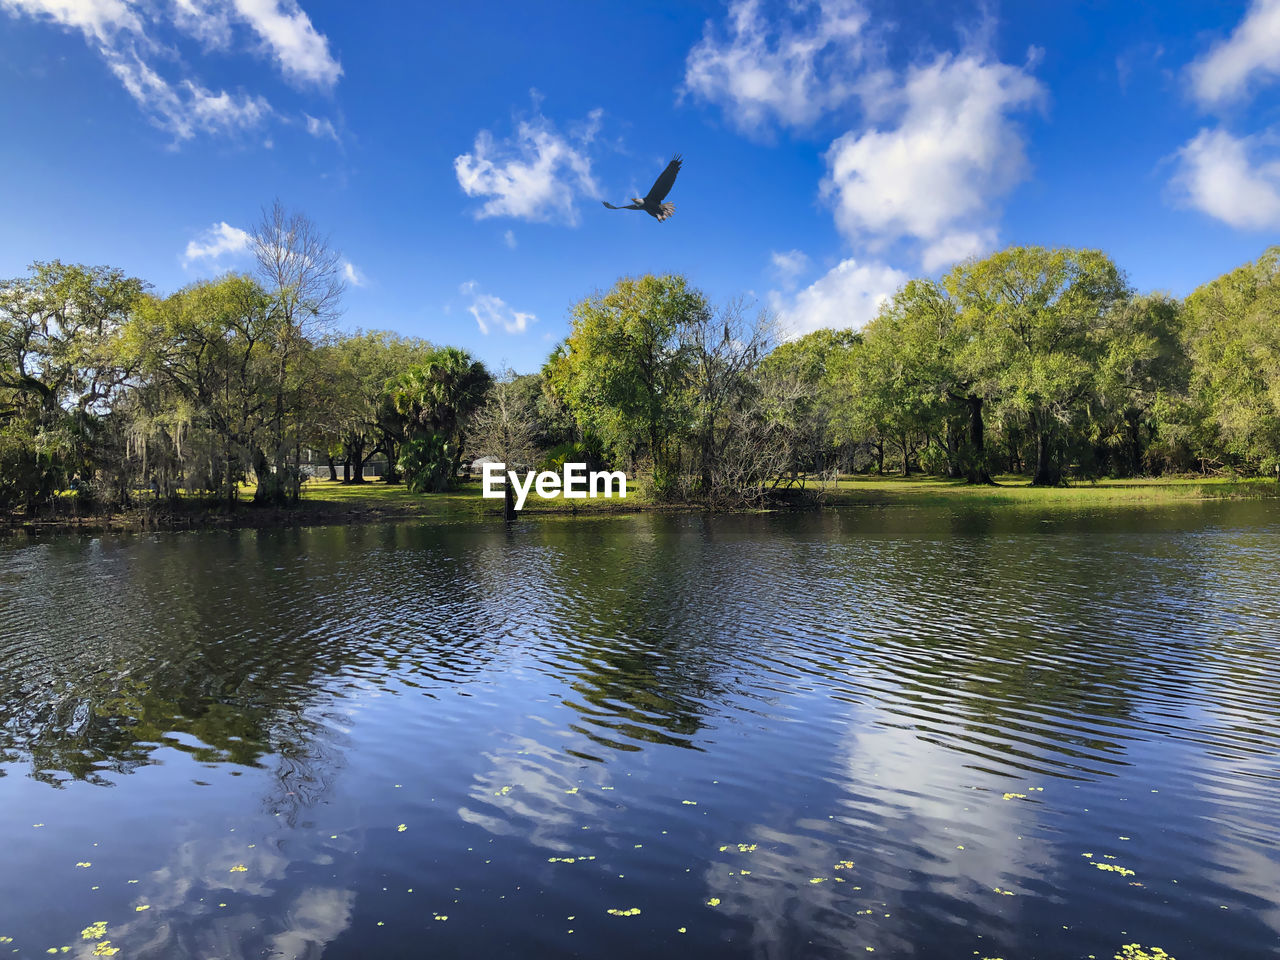 BIRDS FLYING OVER LAKE WITH TREES IN BACKGROUND